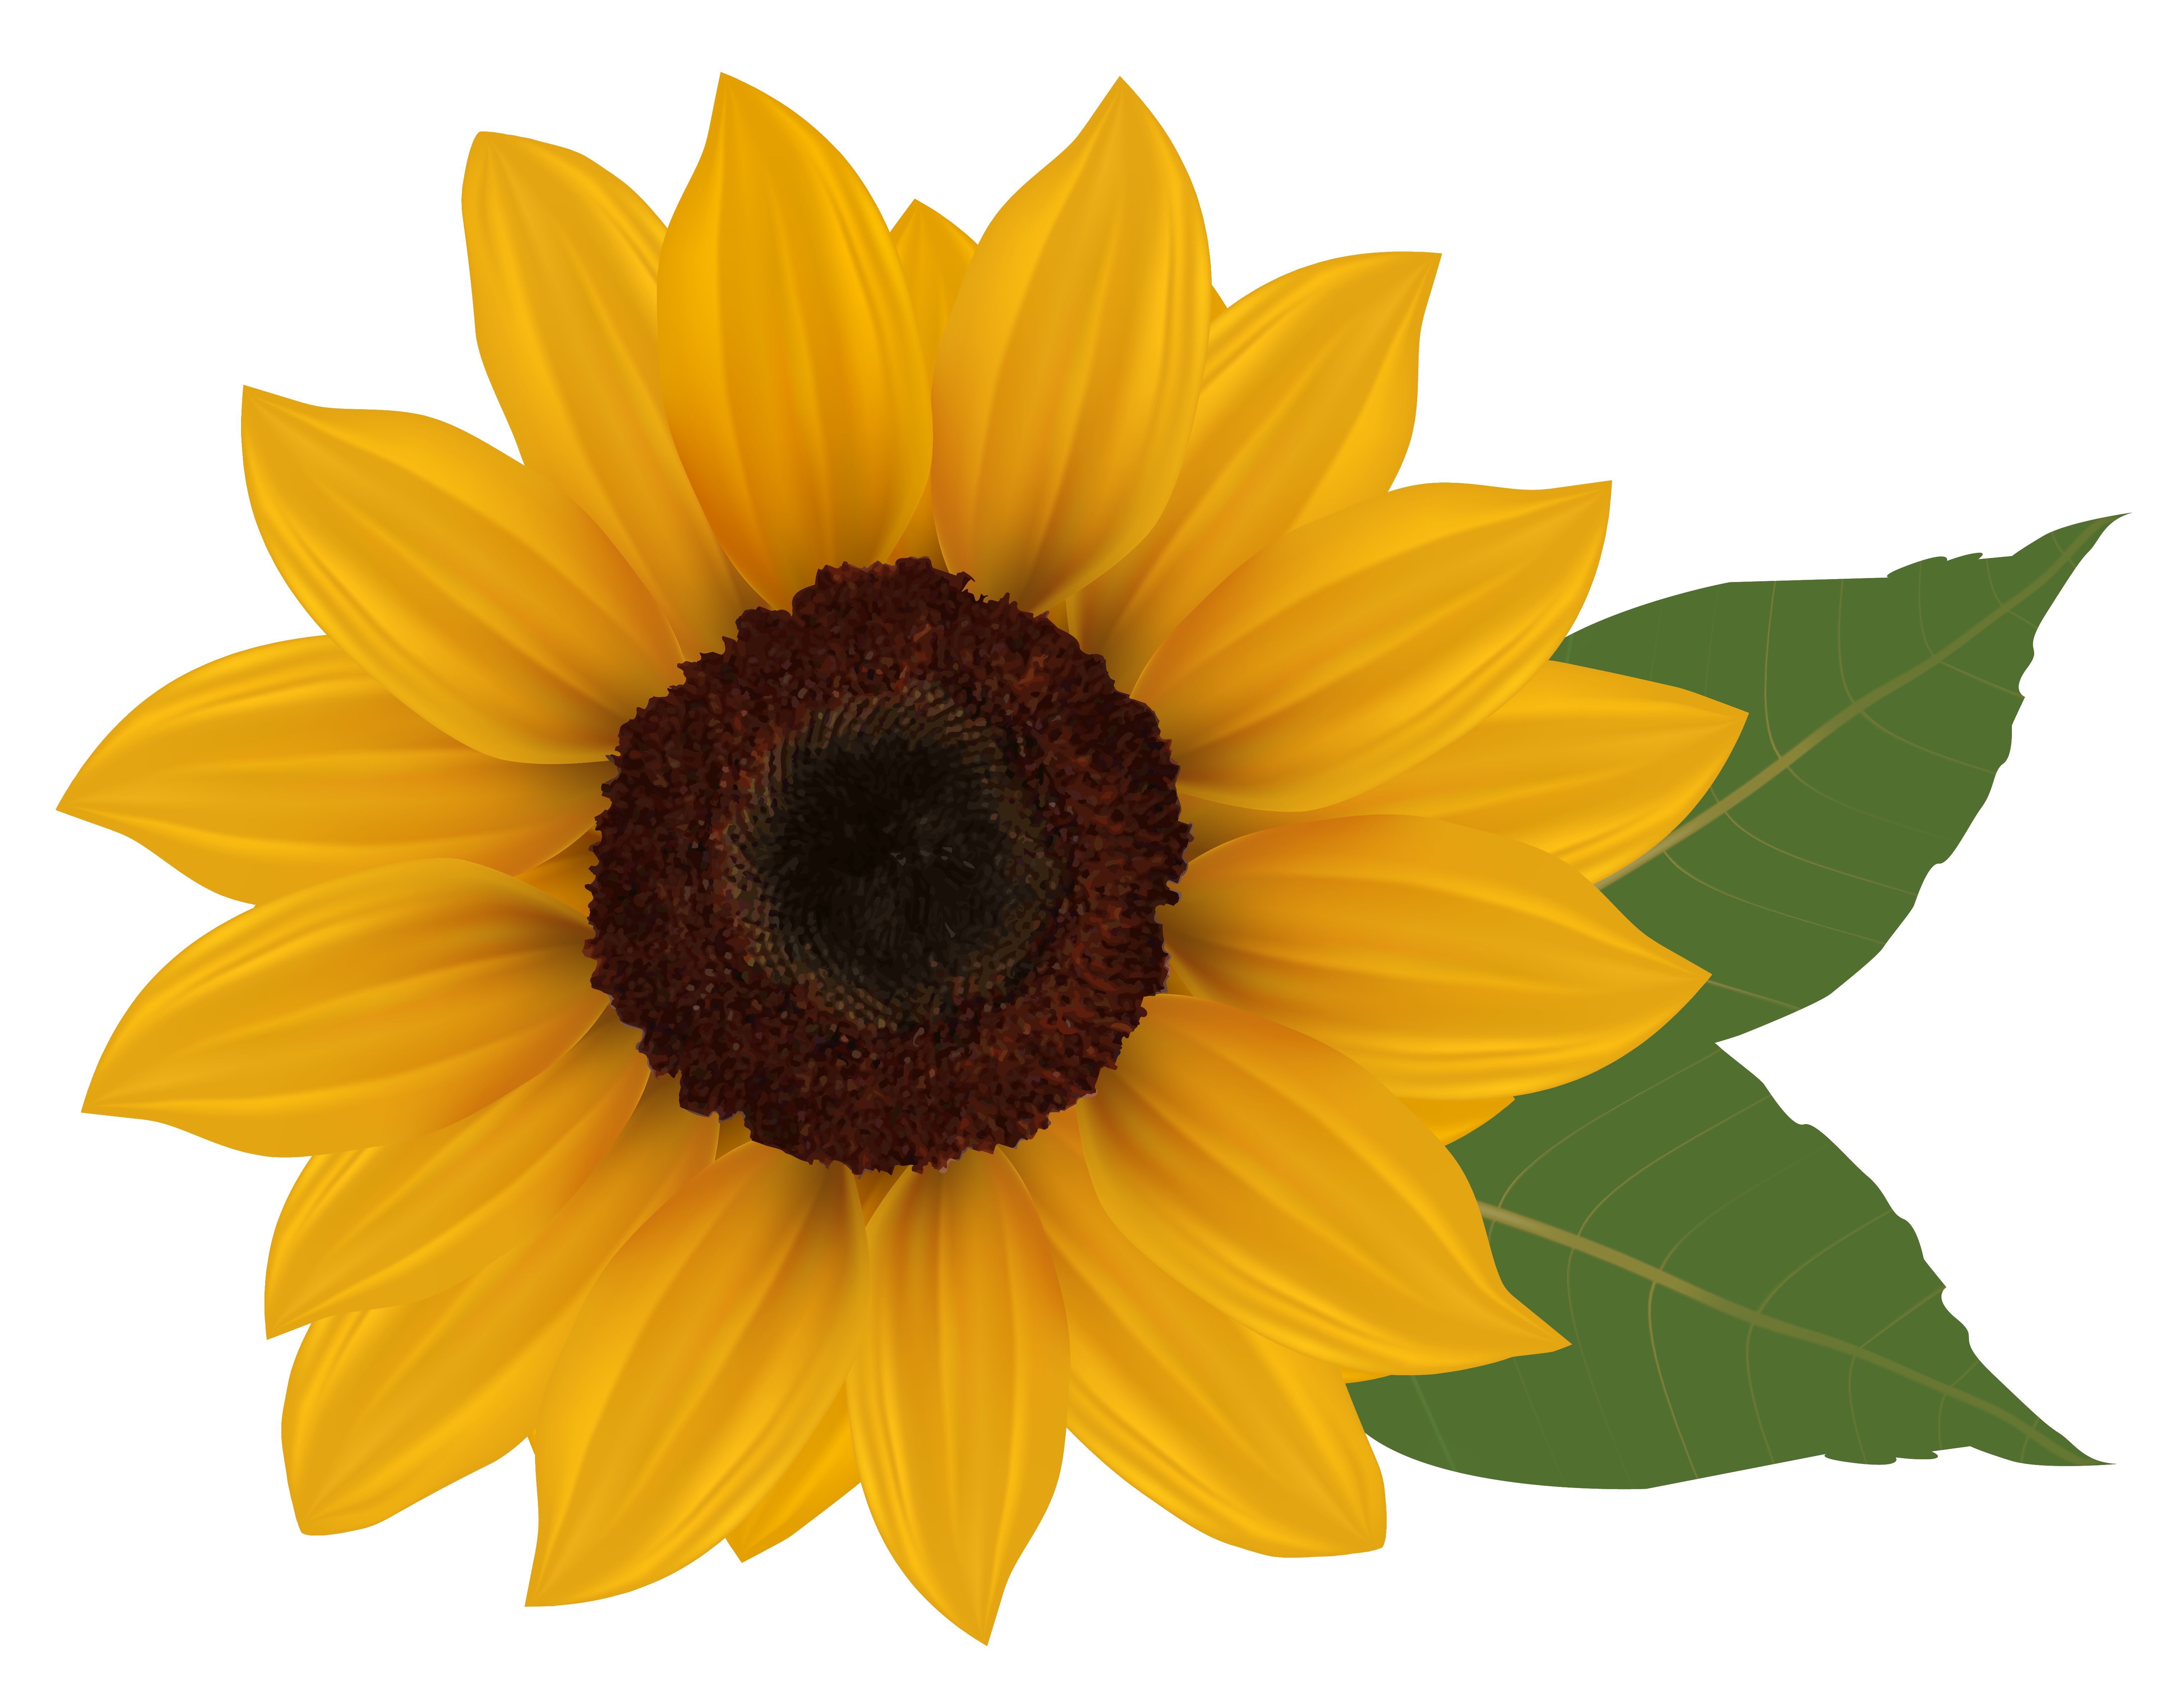 Sunflower png picture gallery. Daffodil clipart animated